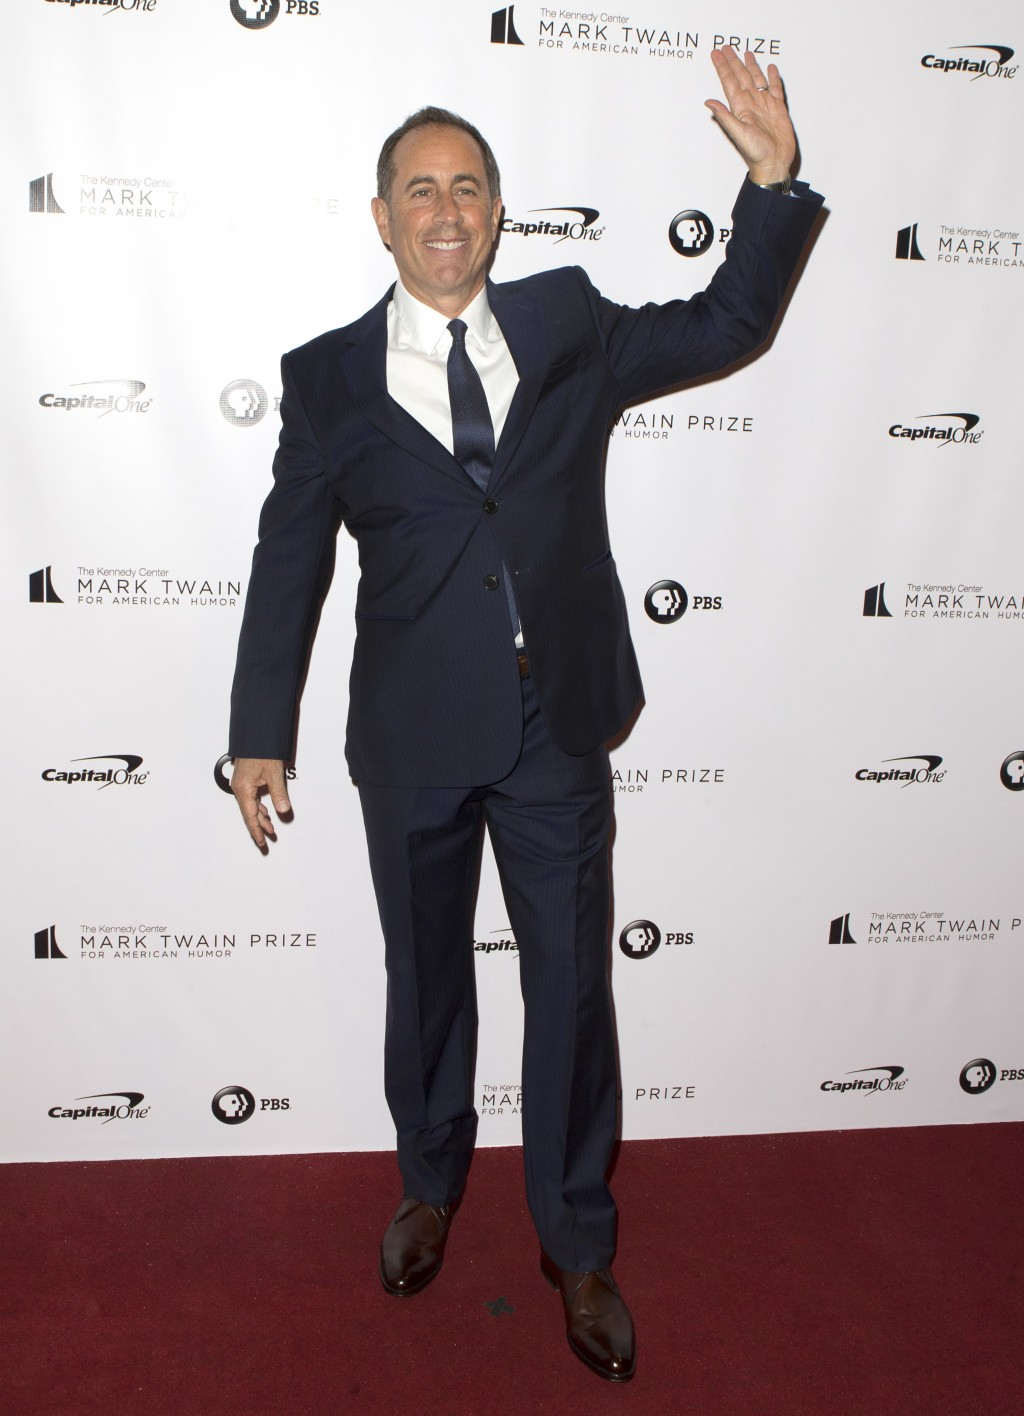 Jerry Seinfeld arrives at the Kennedy Center for the Performing Arts for the 21st Annual Mark Twain Prize for American Humor presented to Julia Louis-